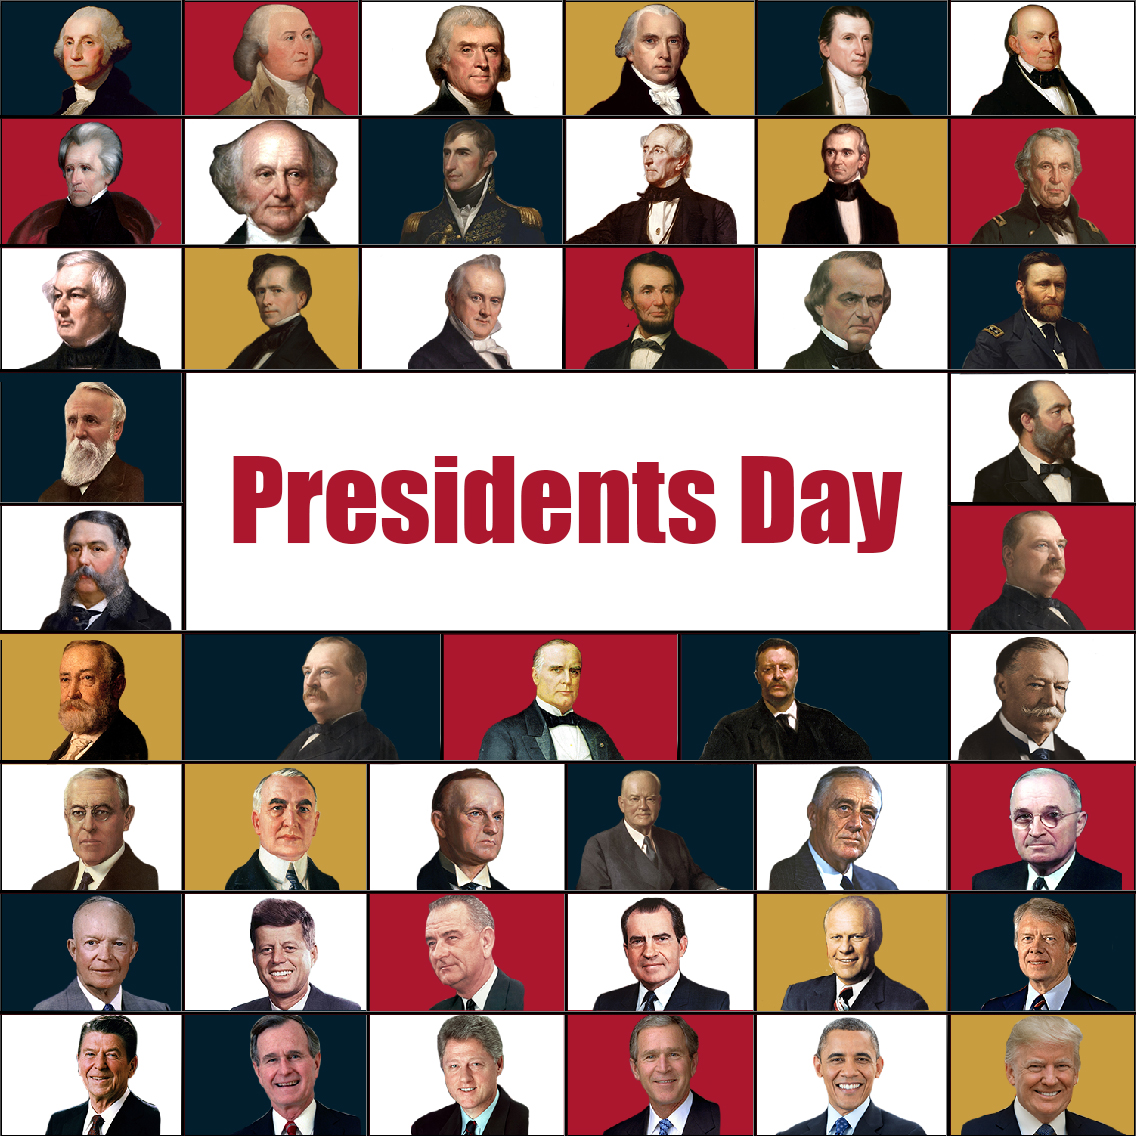 On this #PresidentsDay, turn on your sound to pay tribute with us to our commanders-in-chief and their service to our country.  Semper Fi.